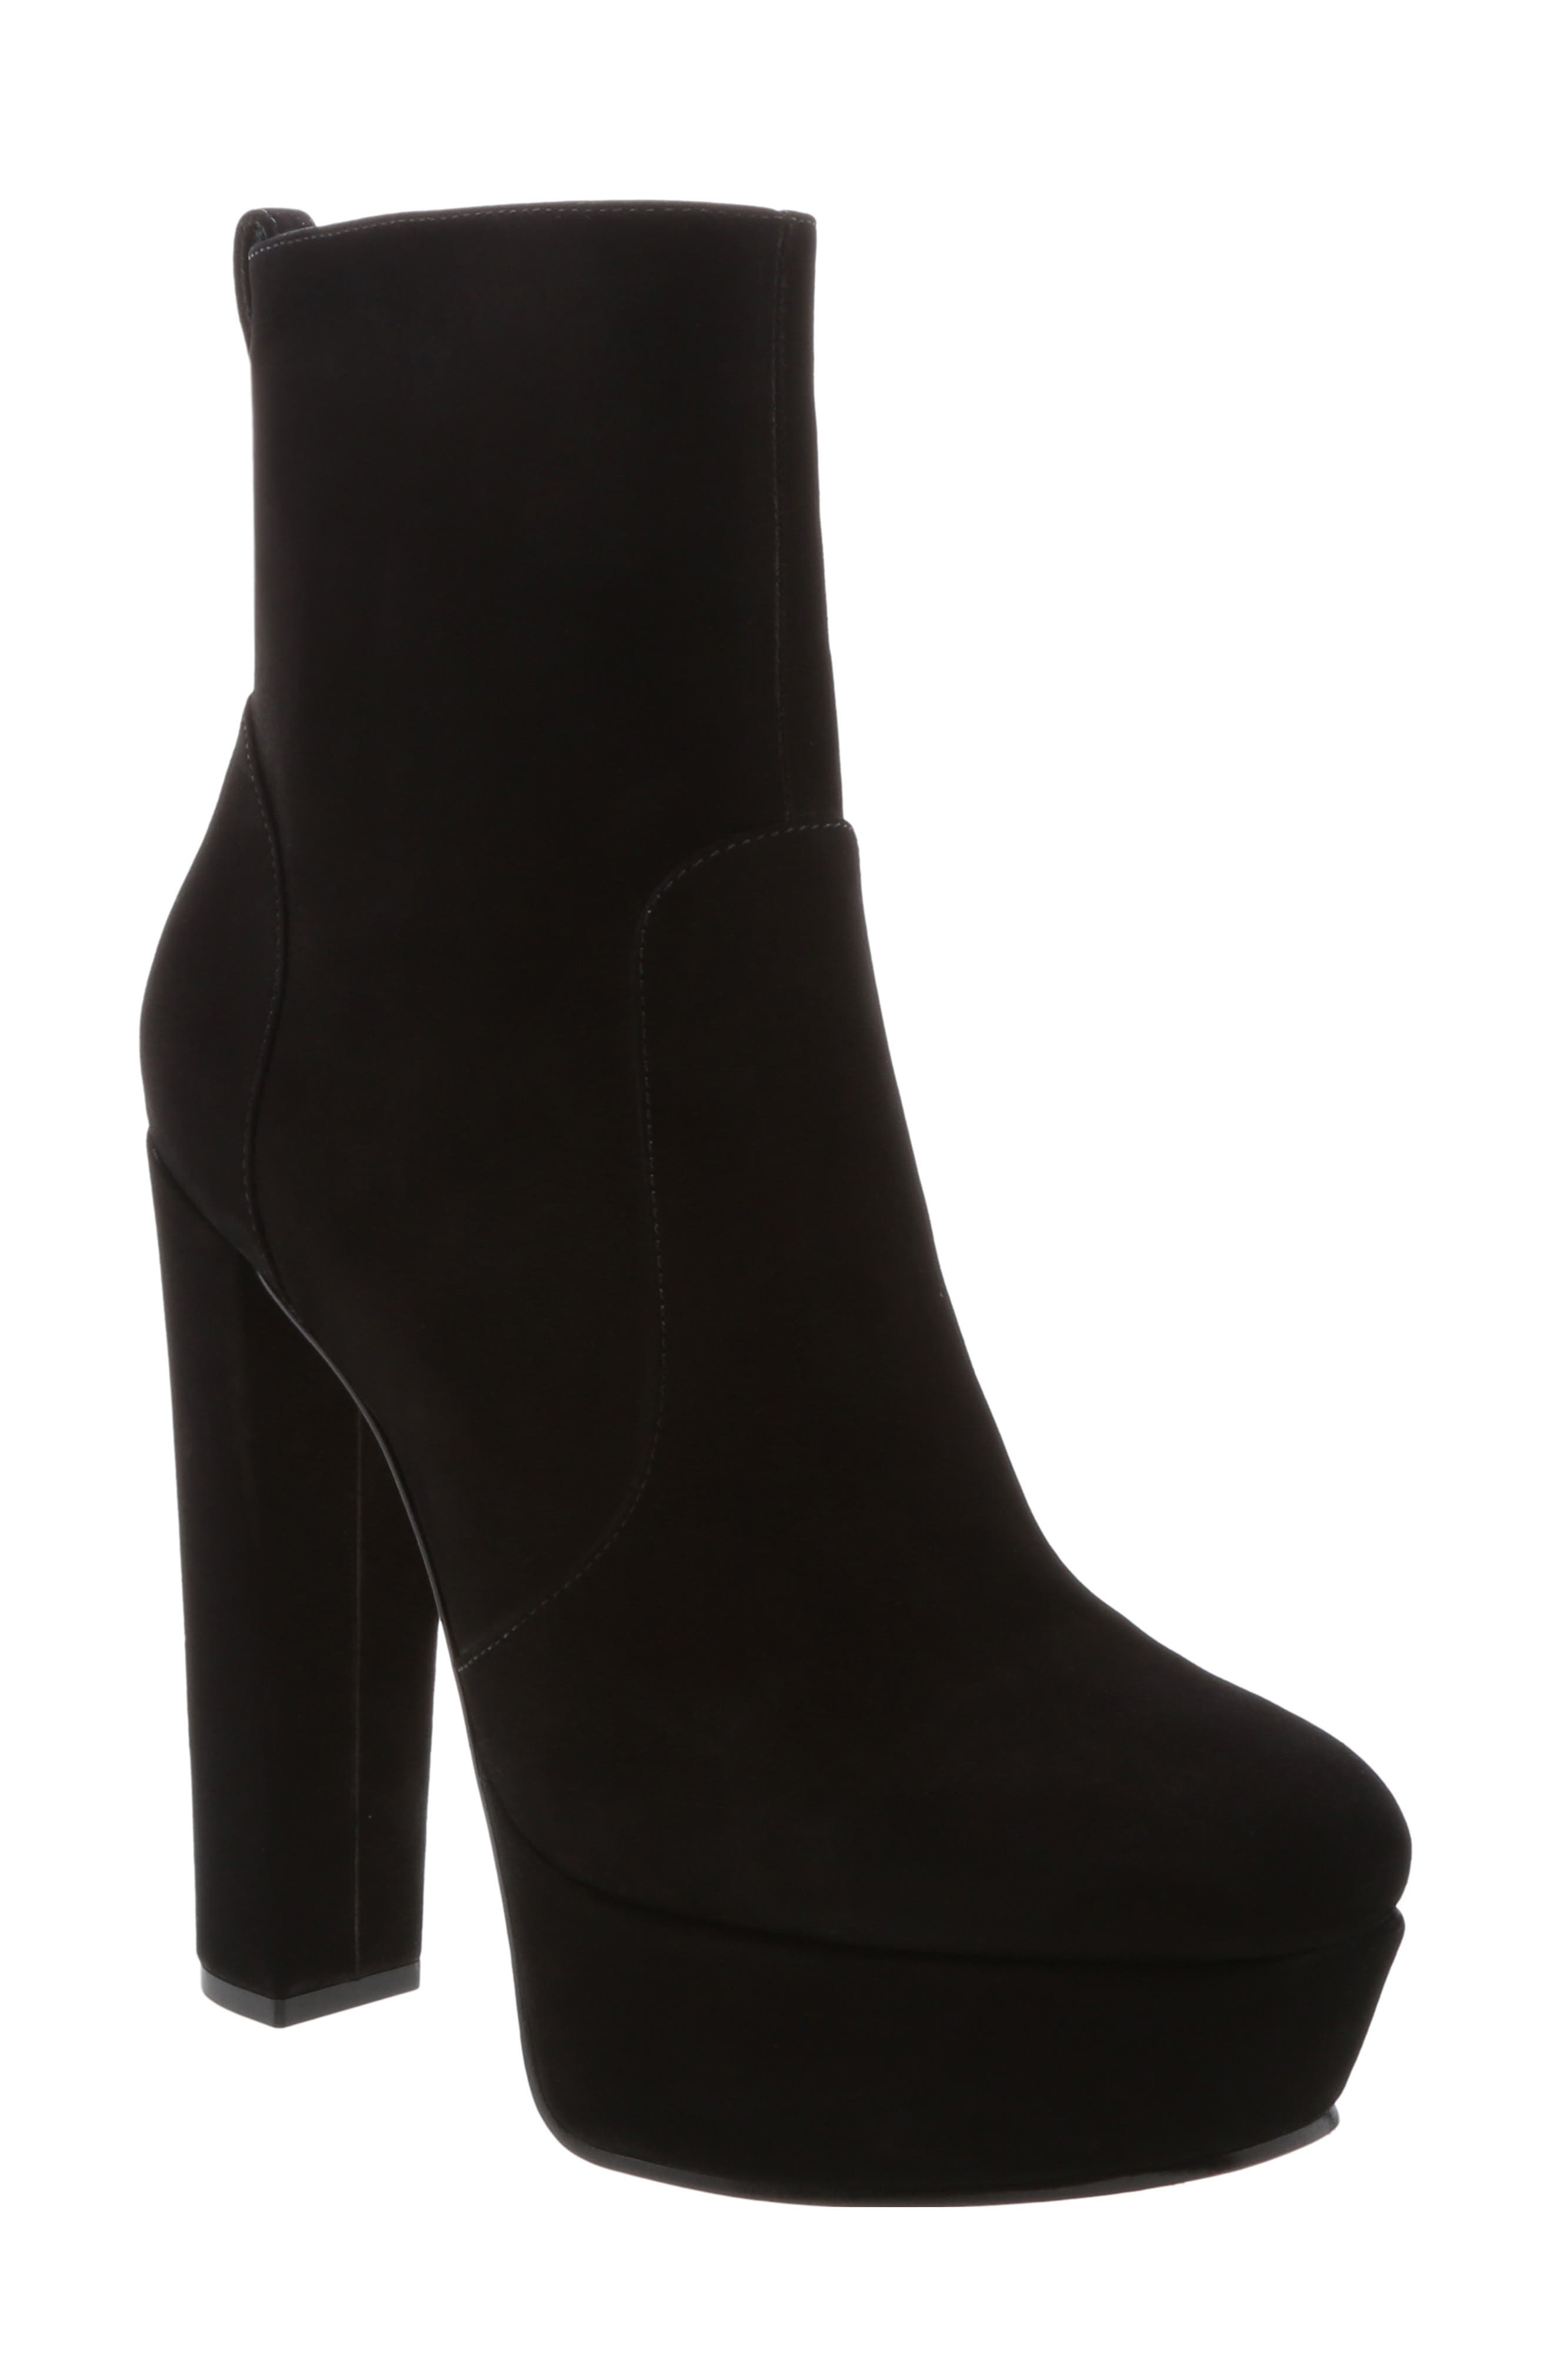 Schutz July Platform Bootie, Black